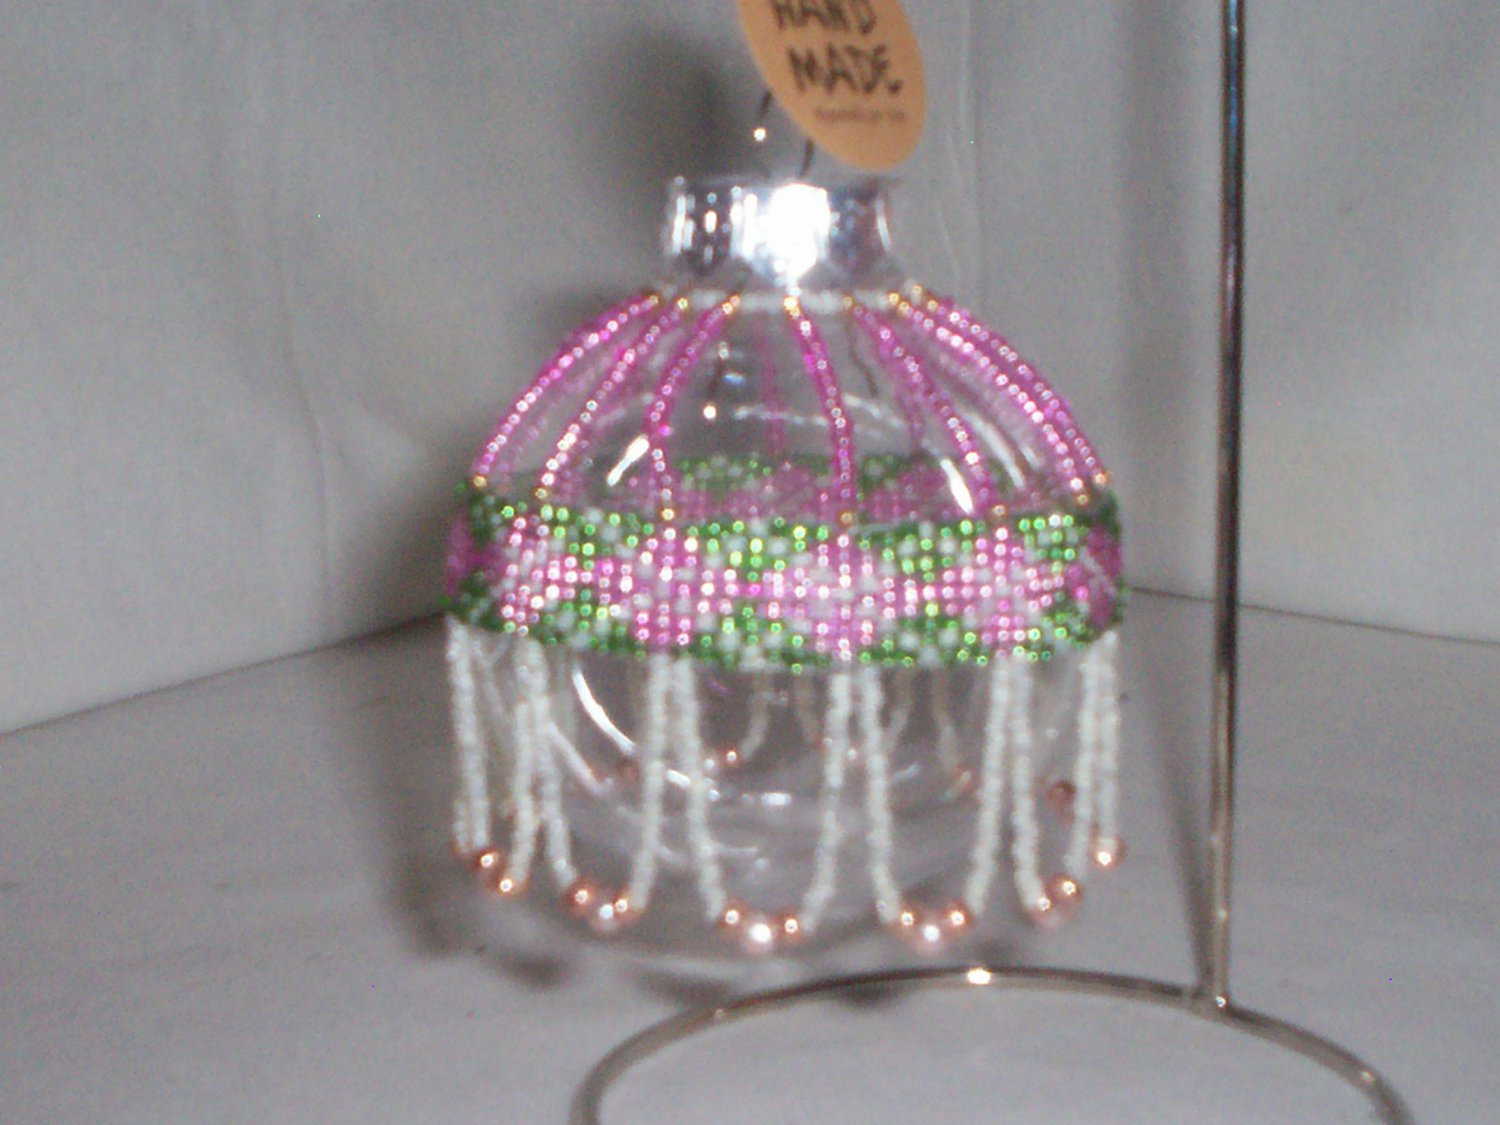 set of 6 beaded clear Christmas ornaments handmade bauble charm decoration item 24